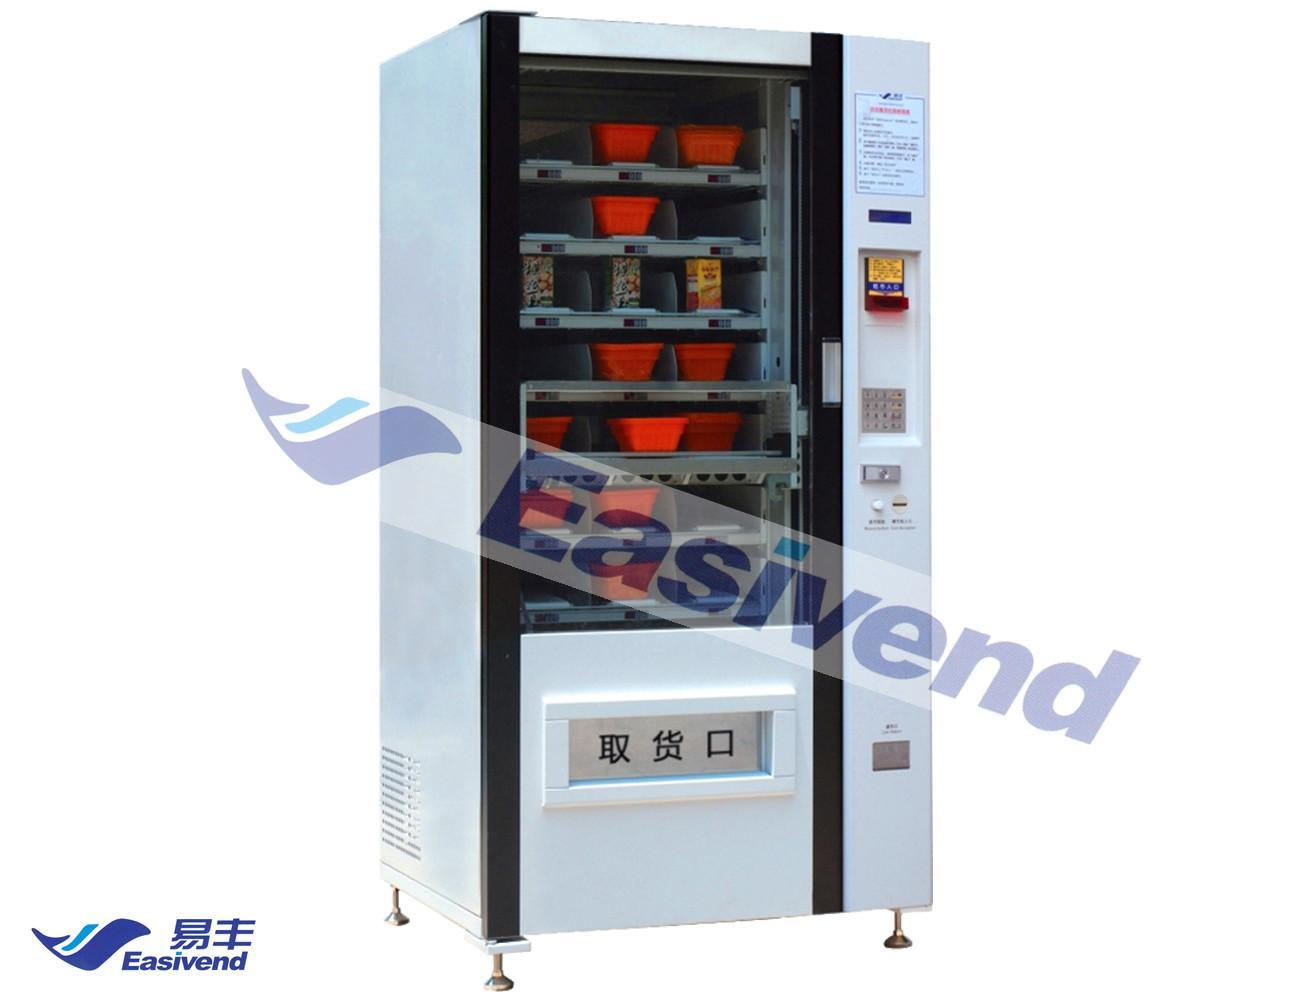 Food and Fruit Vending Machine